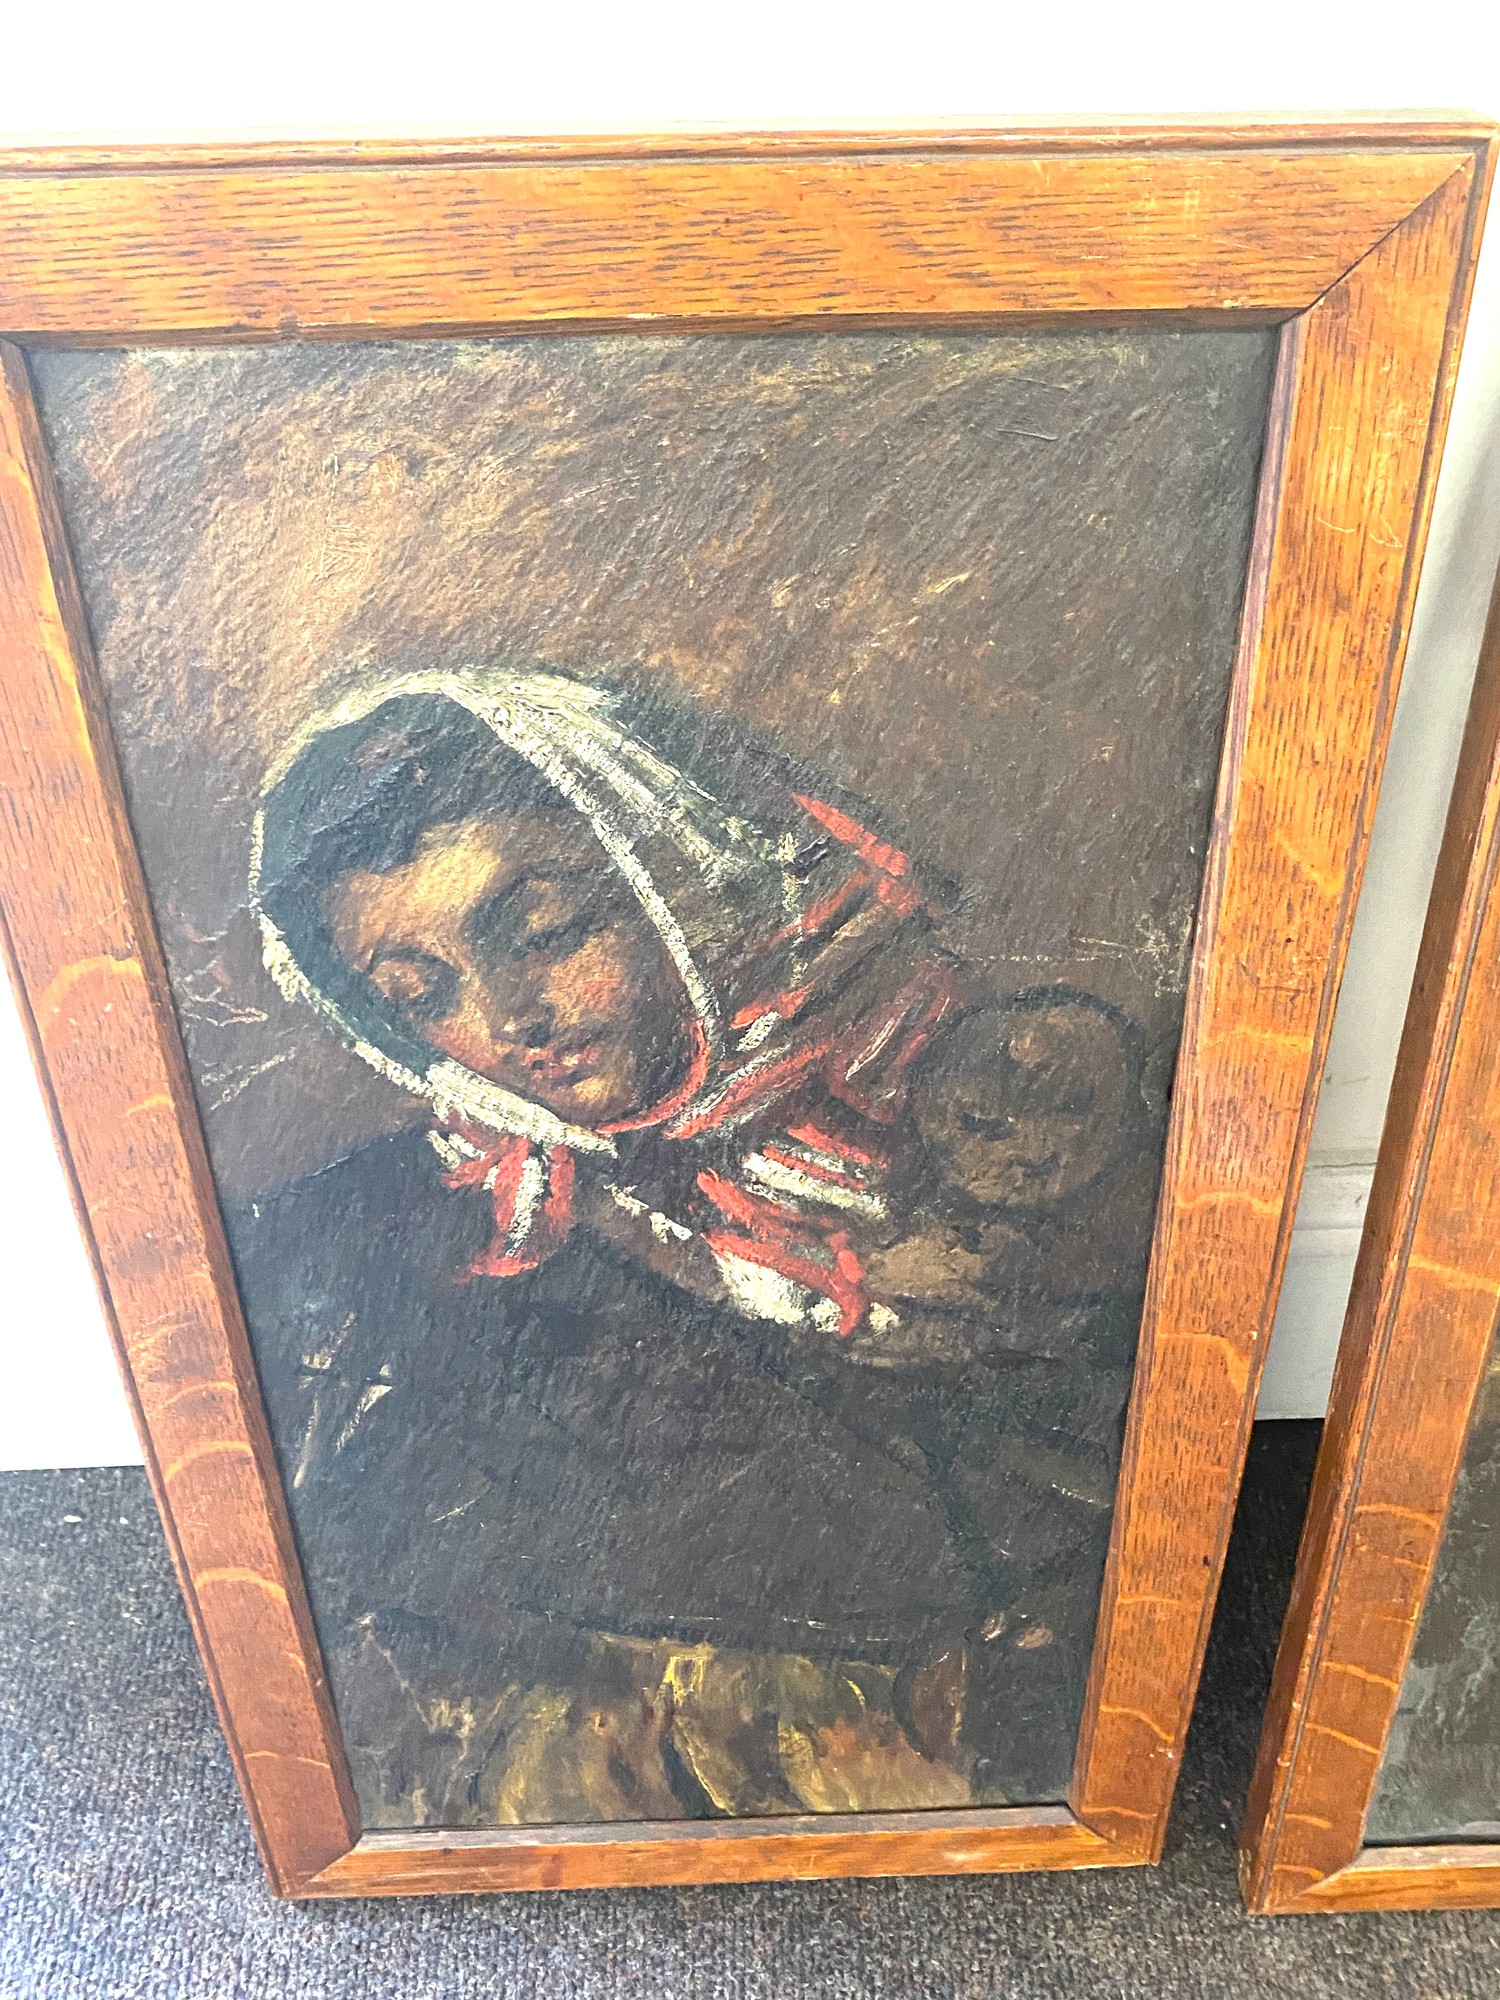 Pair of antique paintings on slate, signed on the frame. - Image 3 of 3